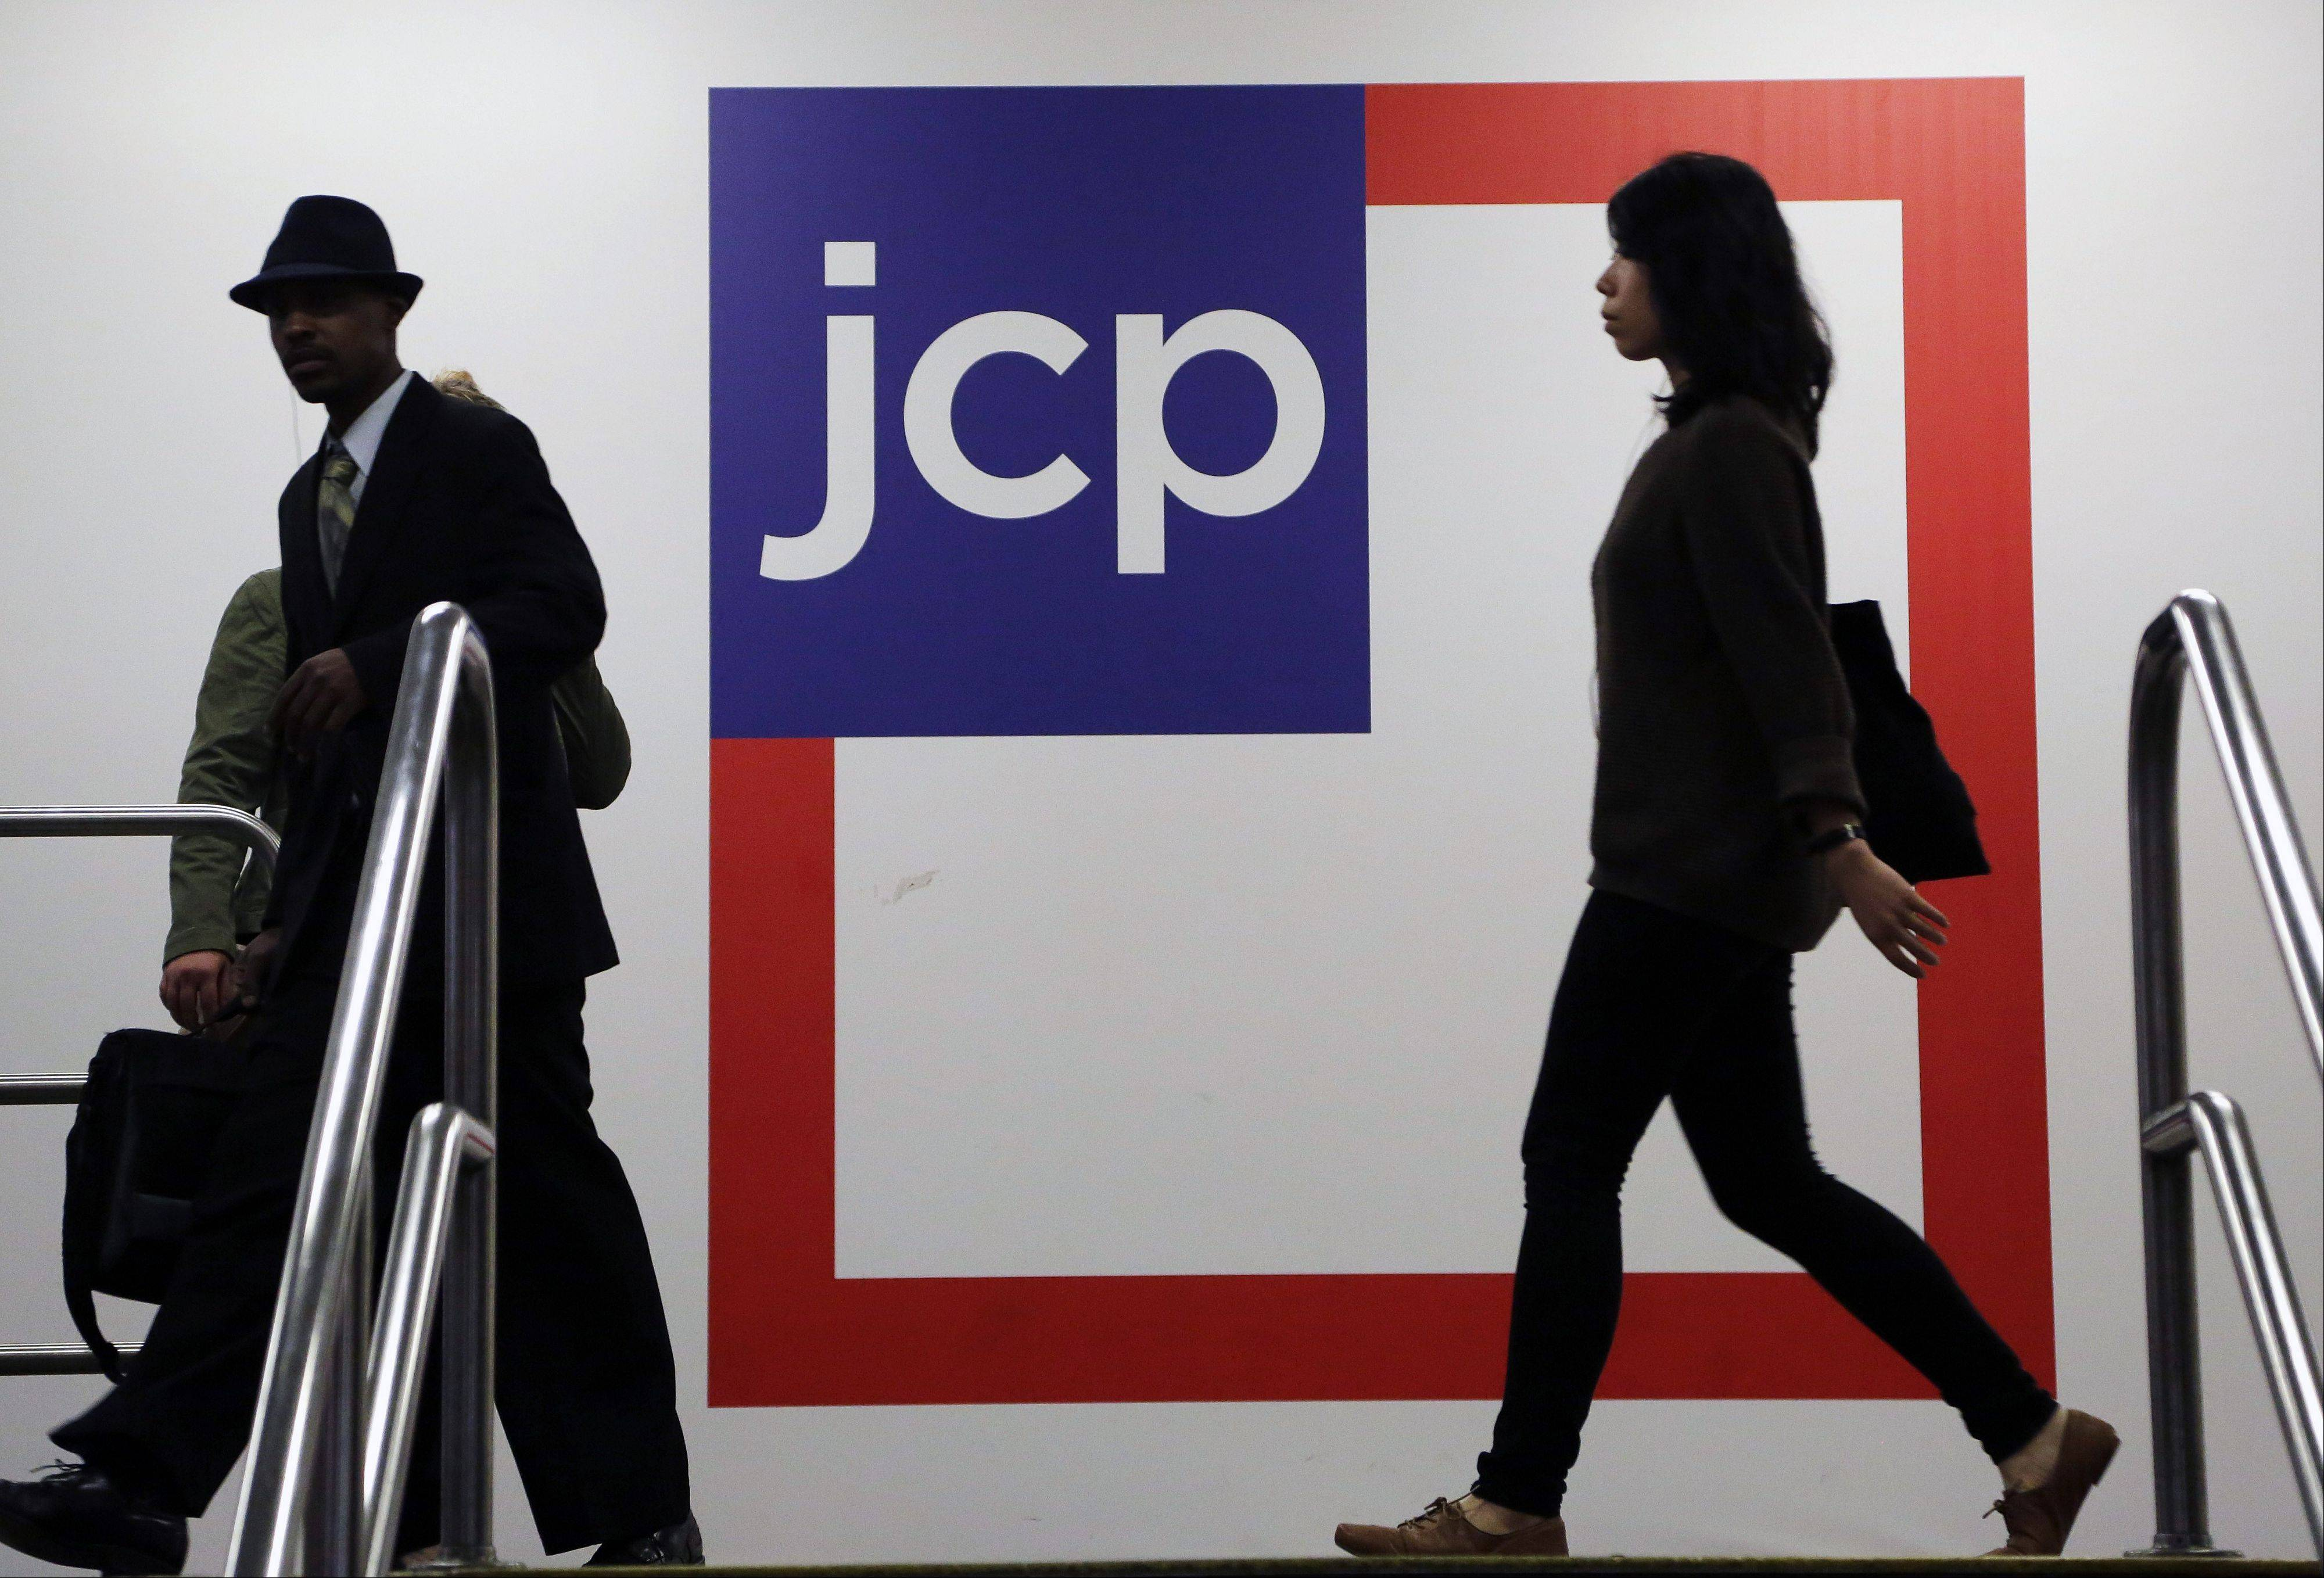 Customers shop at a J.C. Penney store, in New York. Americans cut back on spending in April after their income failed to grow, a sign economic growth may be slowing, according to data released by the Commerce Department, Friday.